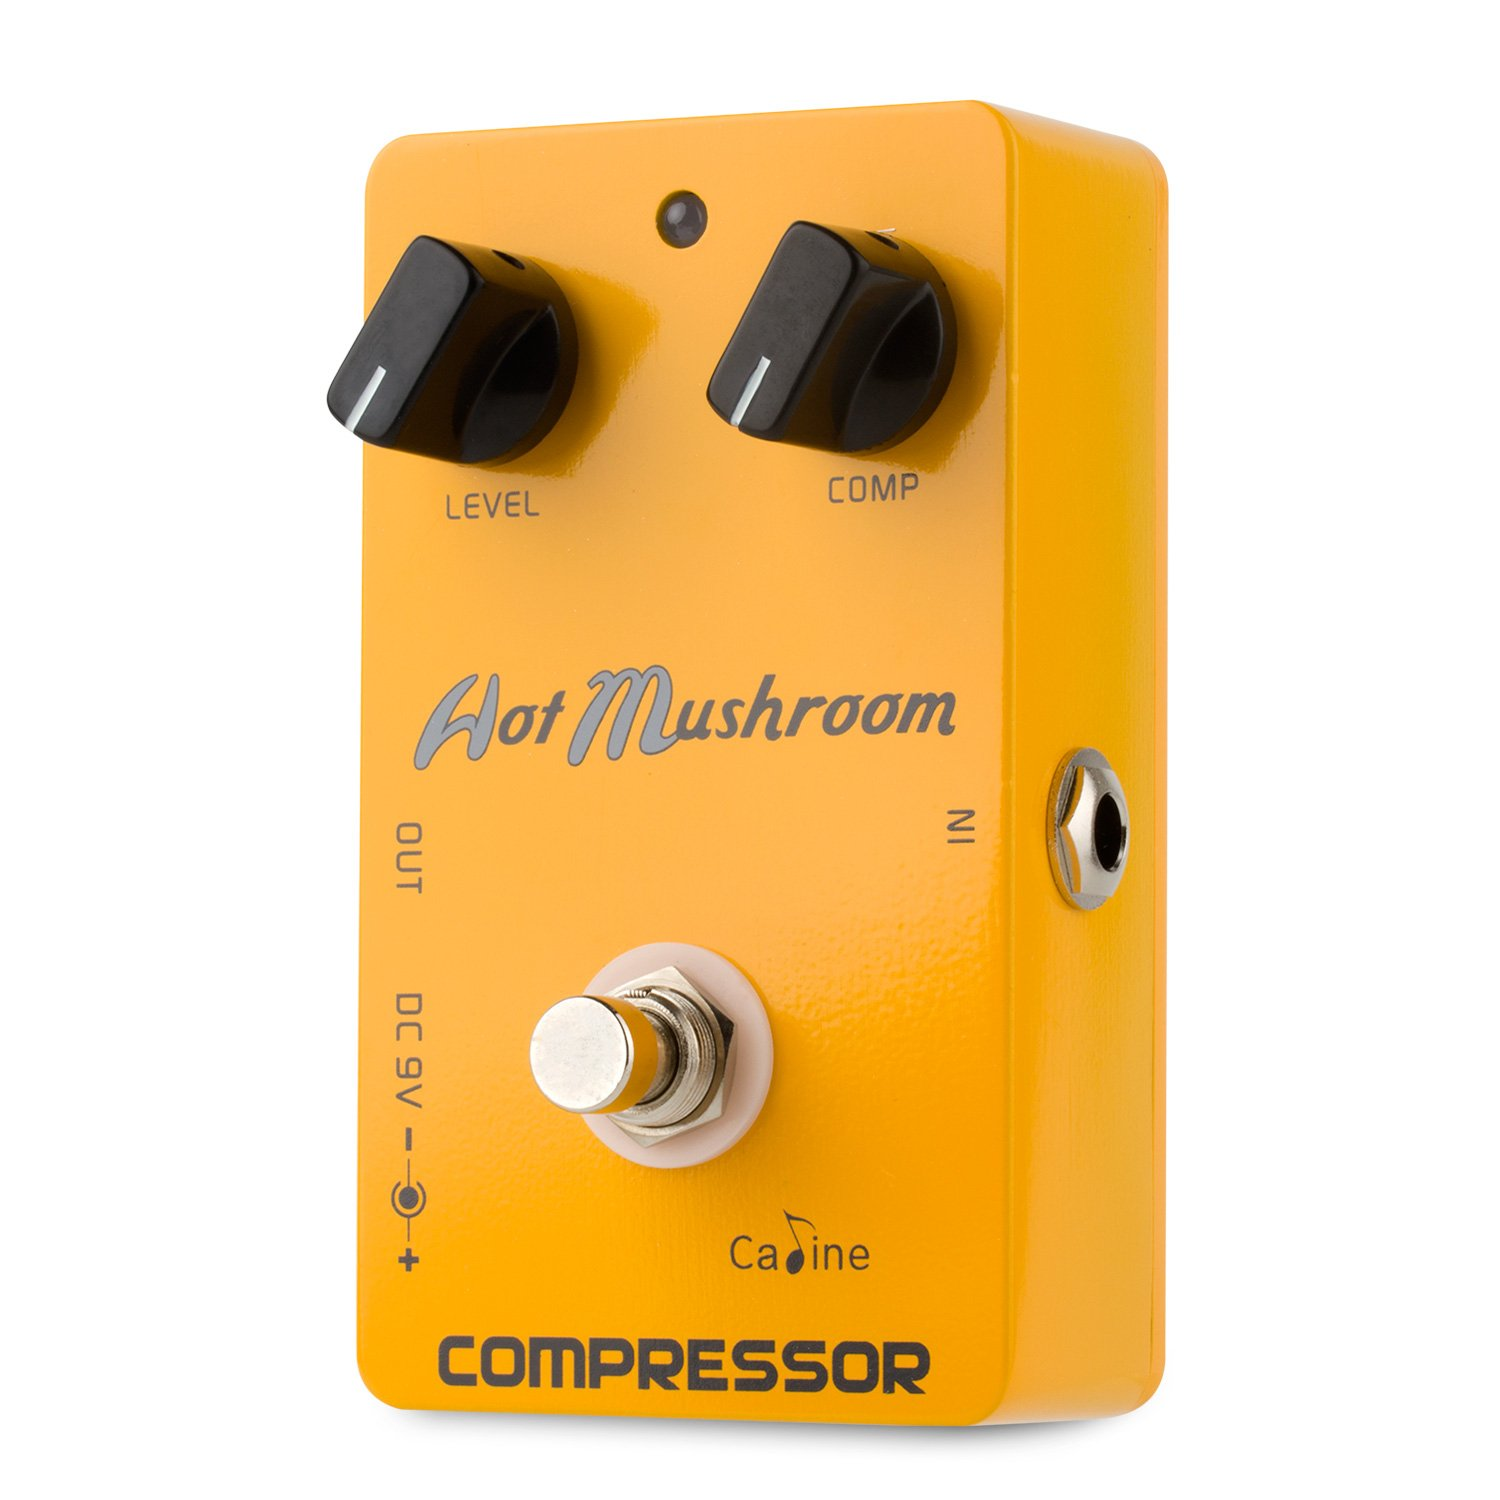 Caline Compressor Pedal Comp Guitar Effects Pedal True Bypass with Aluminum Alloy Housing CP-10 Hot Mushroom, Orange